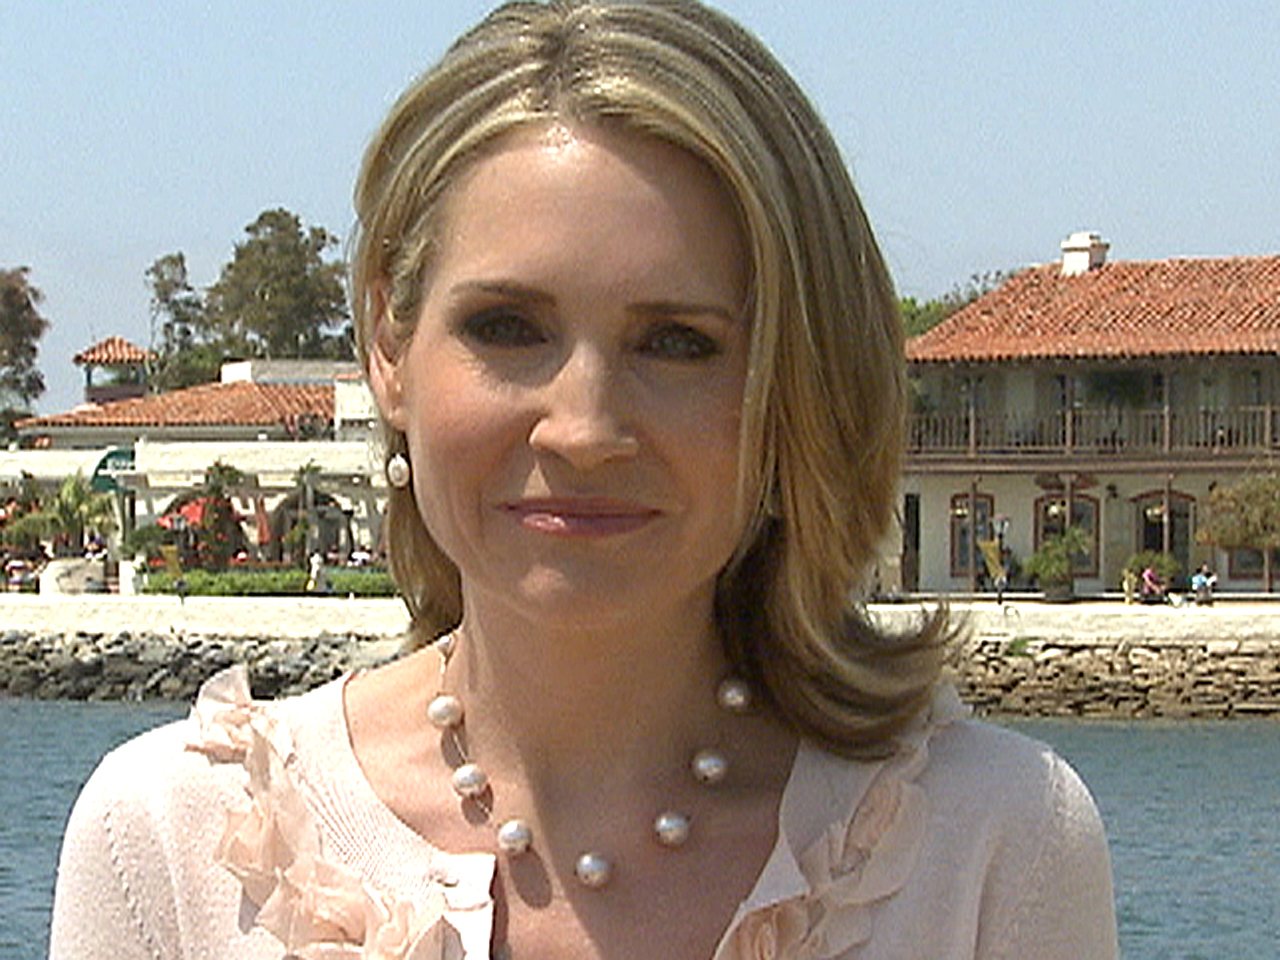 Andrea Canning previews 'Behind Closed Doors' - NBC News